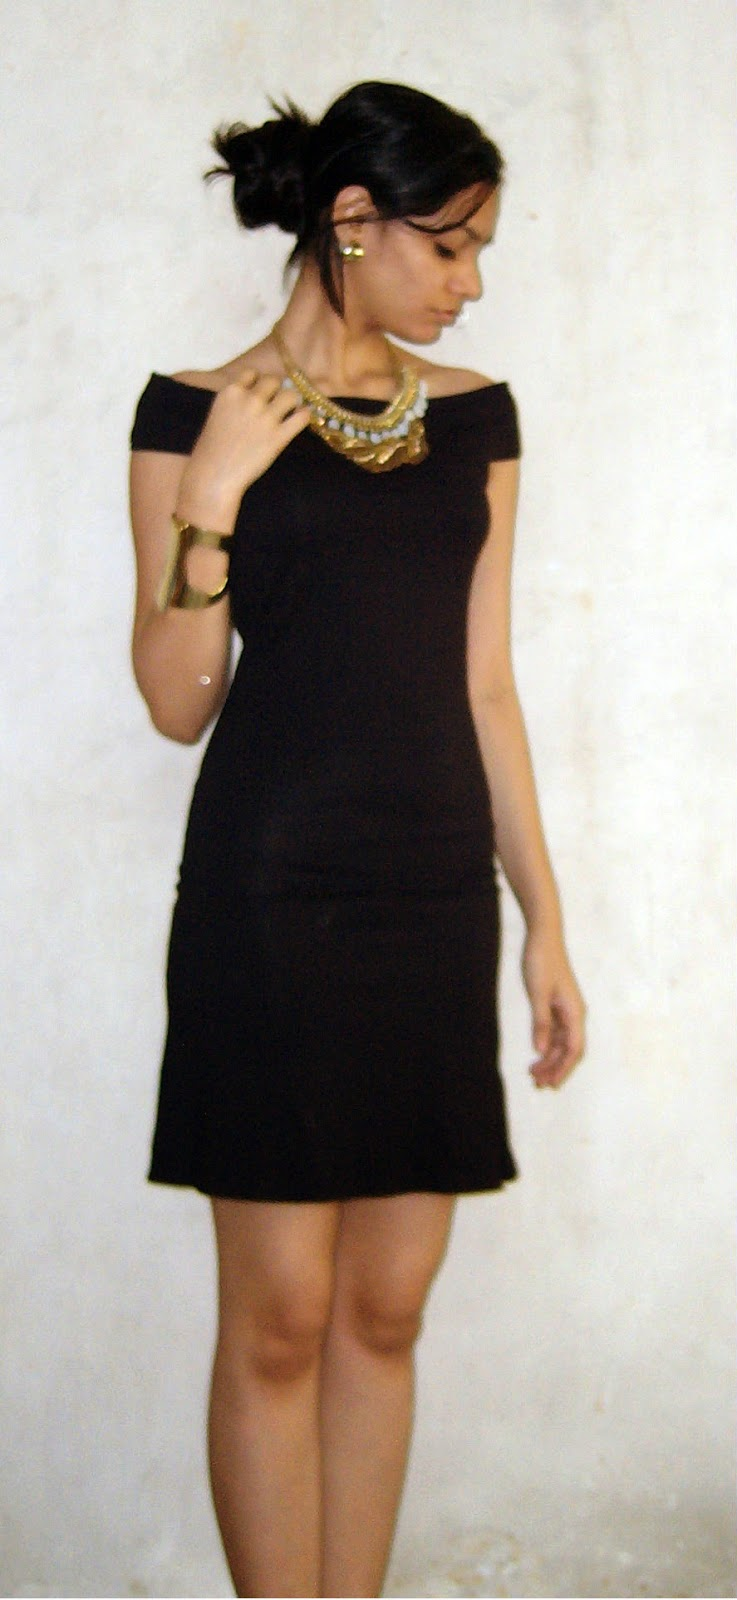 classic LBD, how to wear an LBD, little black dress styling, how to style a LBD, how to wear a black dress, how to wear accessories with a black dress, mumbai fashion blogger, gold necklaces, how to layer necklaces, gold cuff, colaba causeway